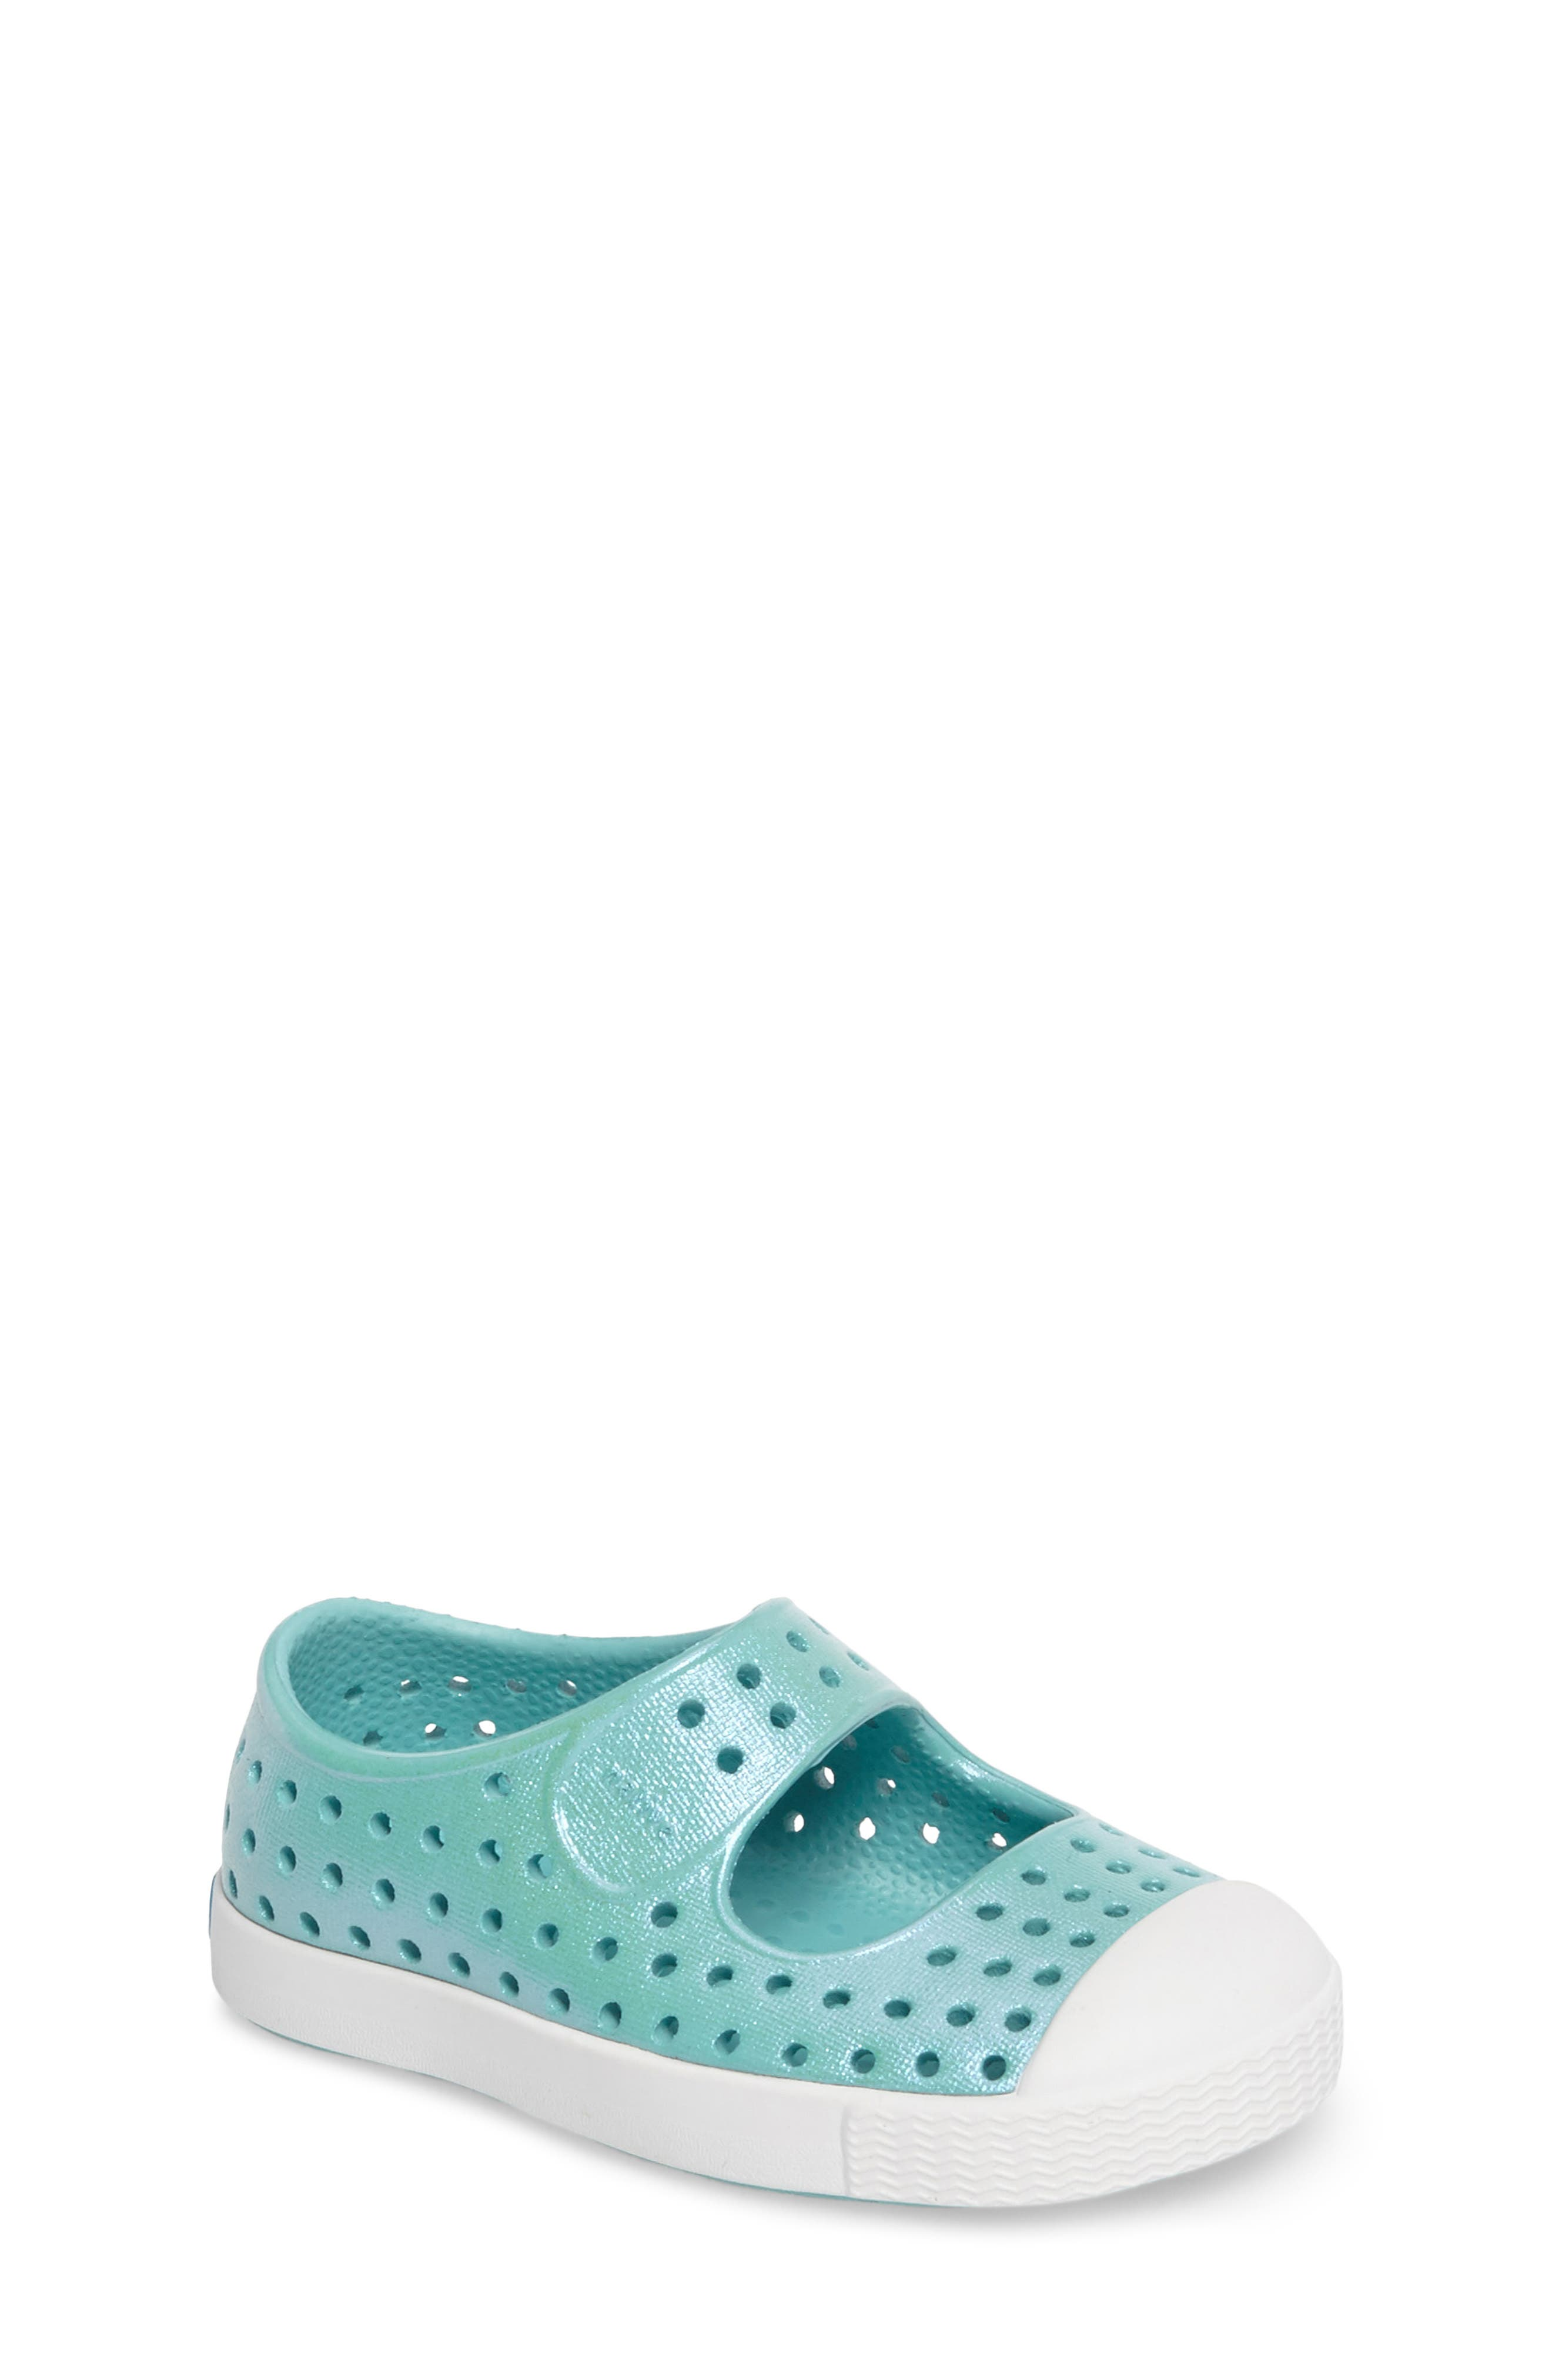 NATIVE SHOES Juniper Perforated Mary Jane